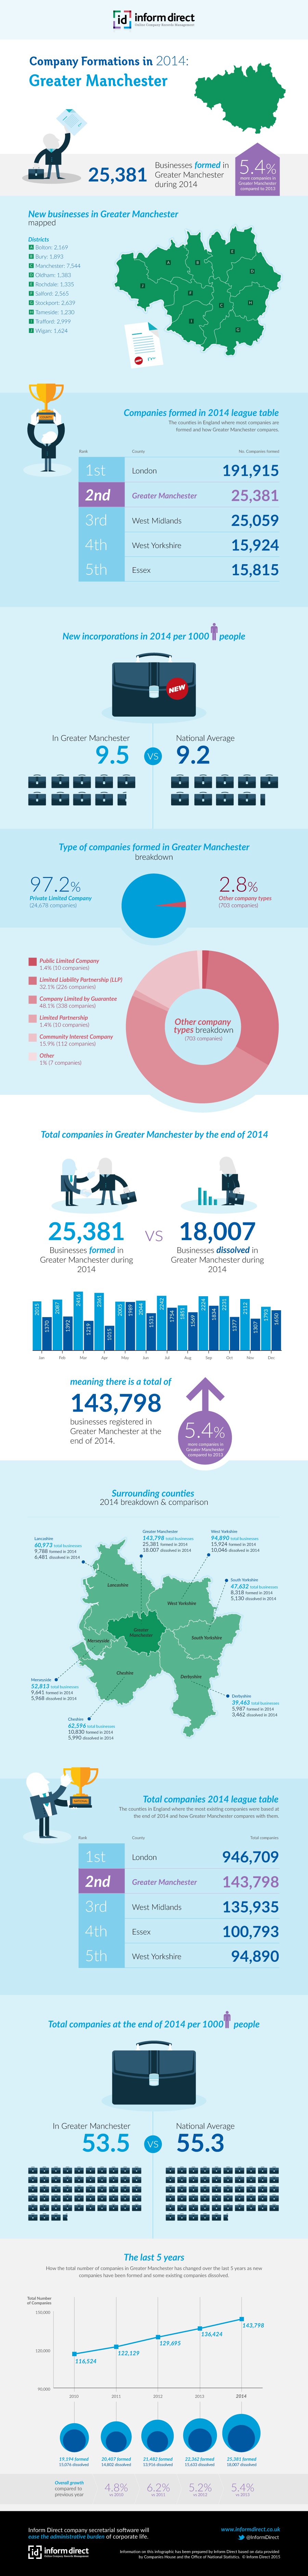 Inform Direct - Company Formations in Greater Manchester 2014 Infographic